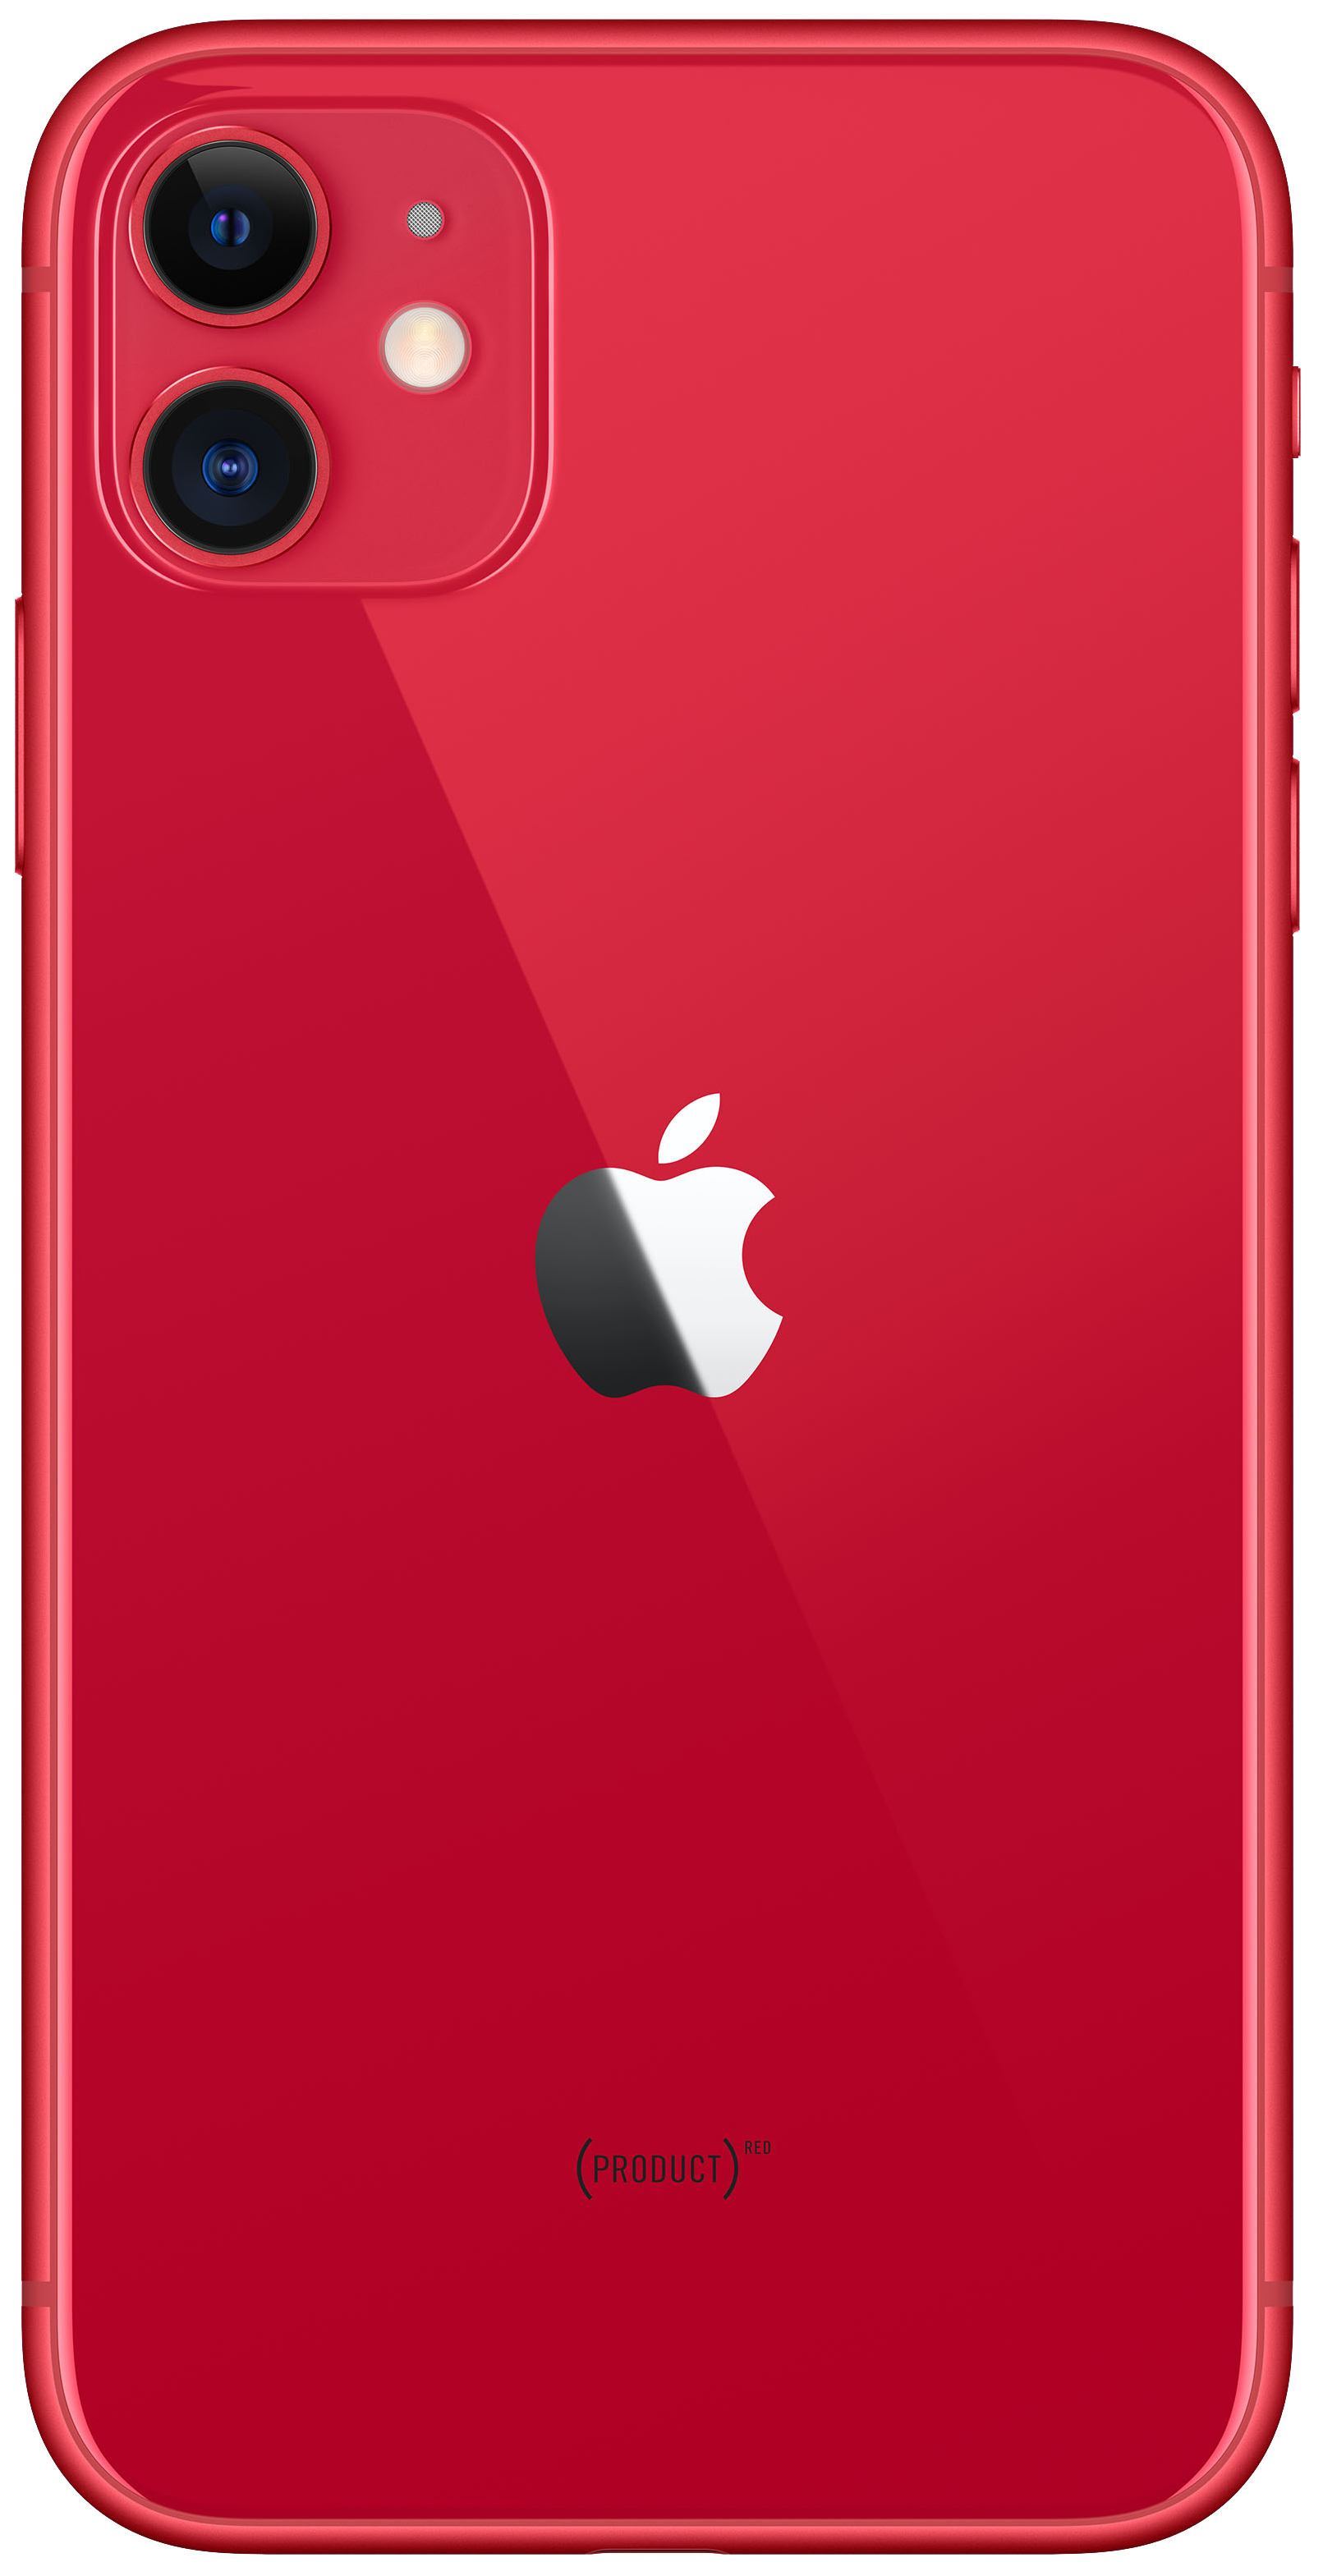 Apple Iphone 11 Png Images Free Download